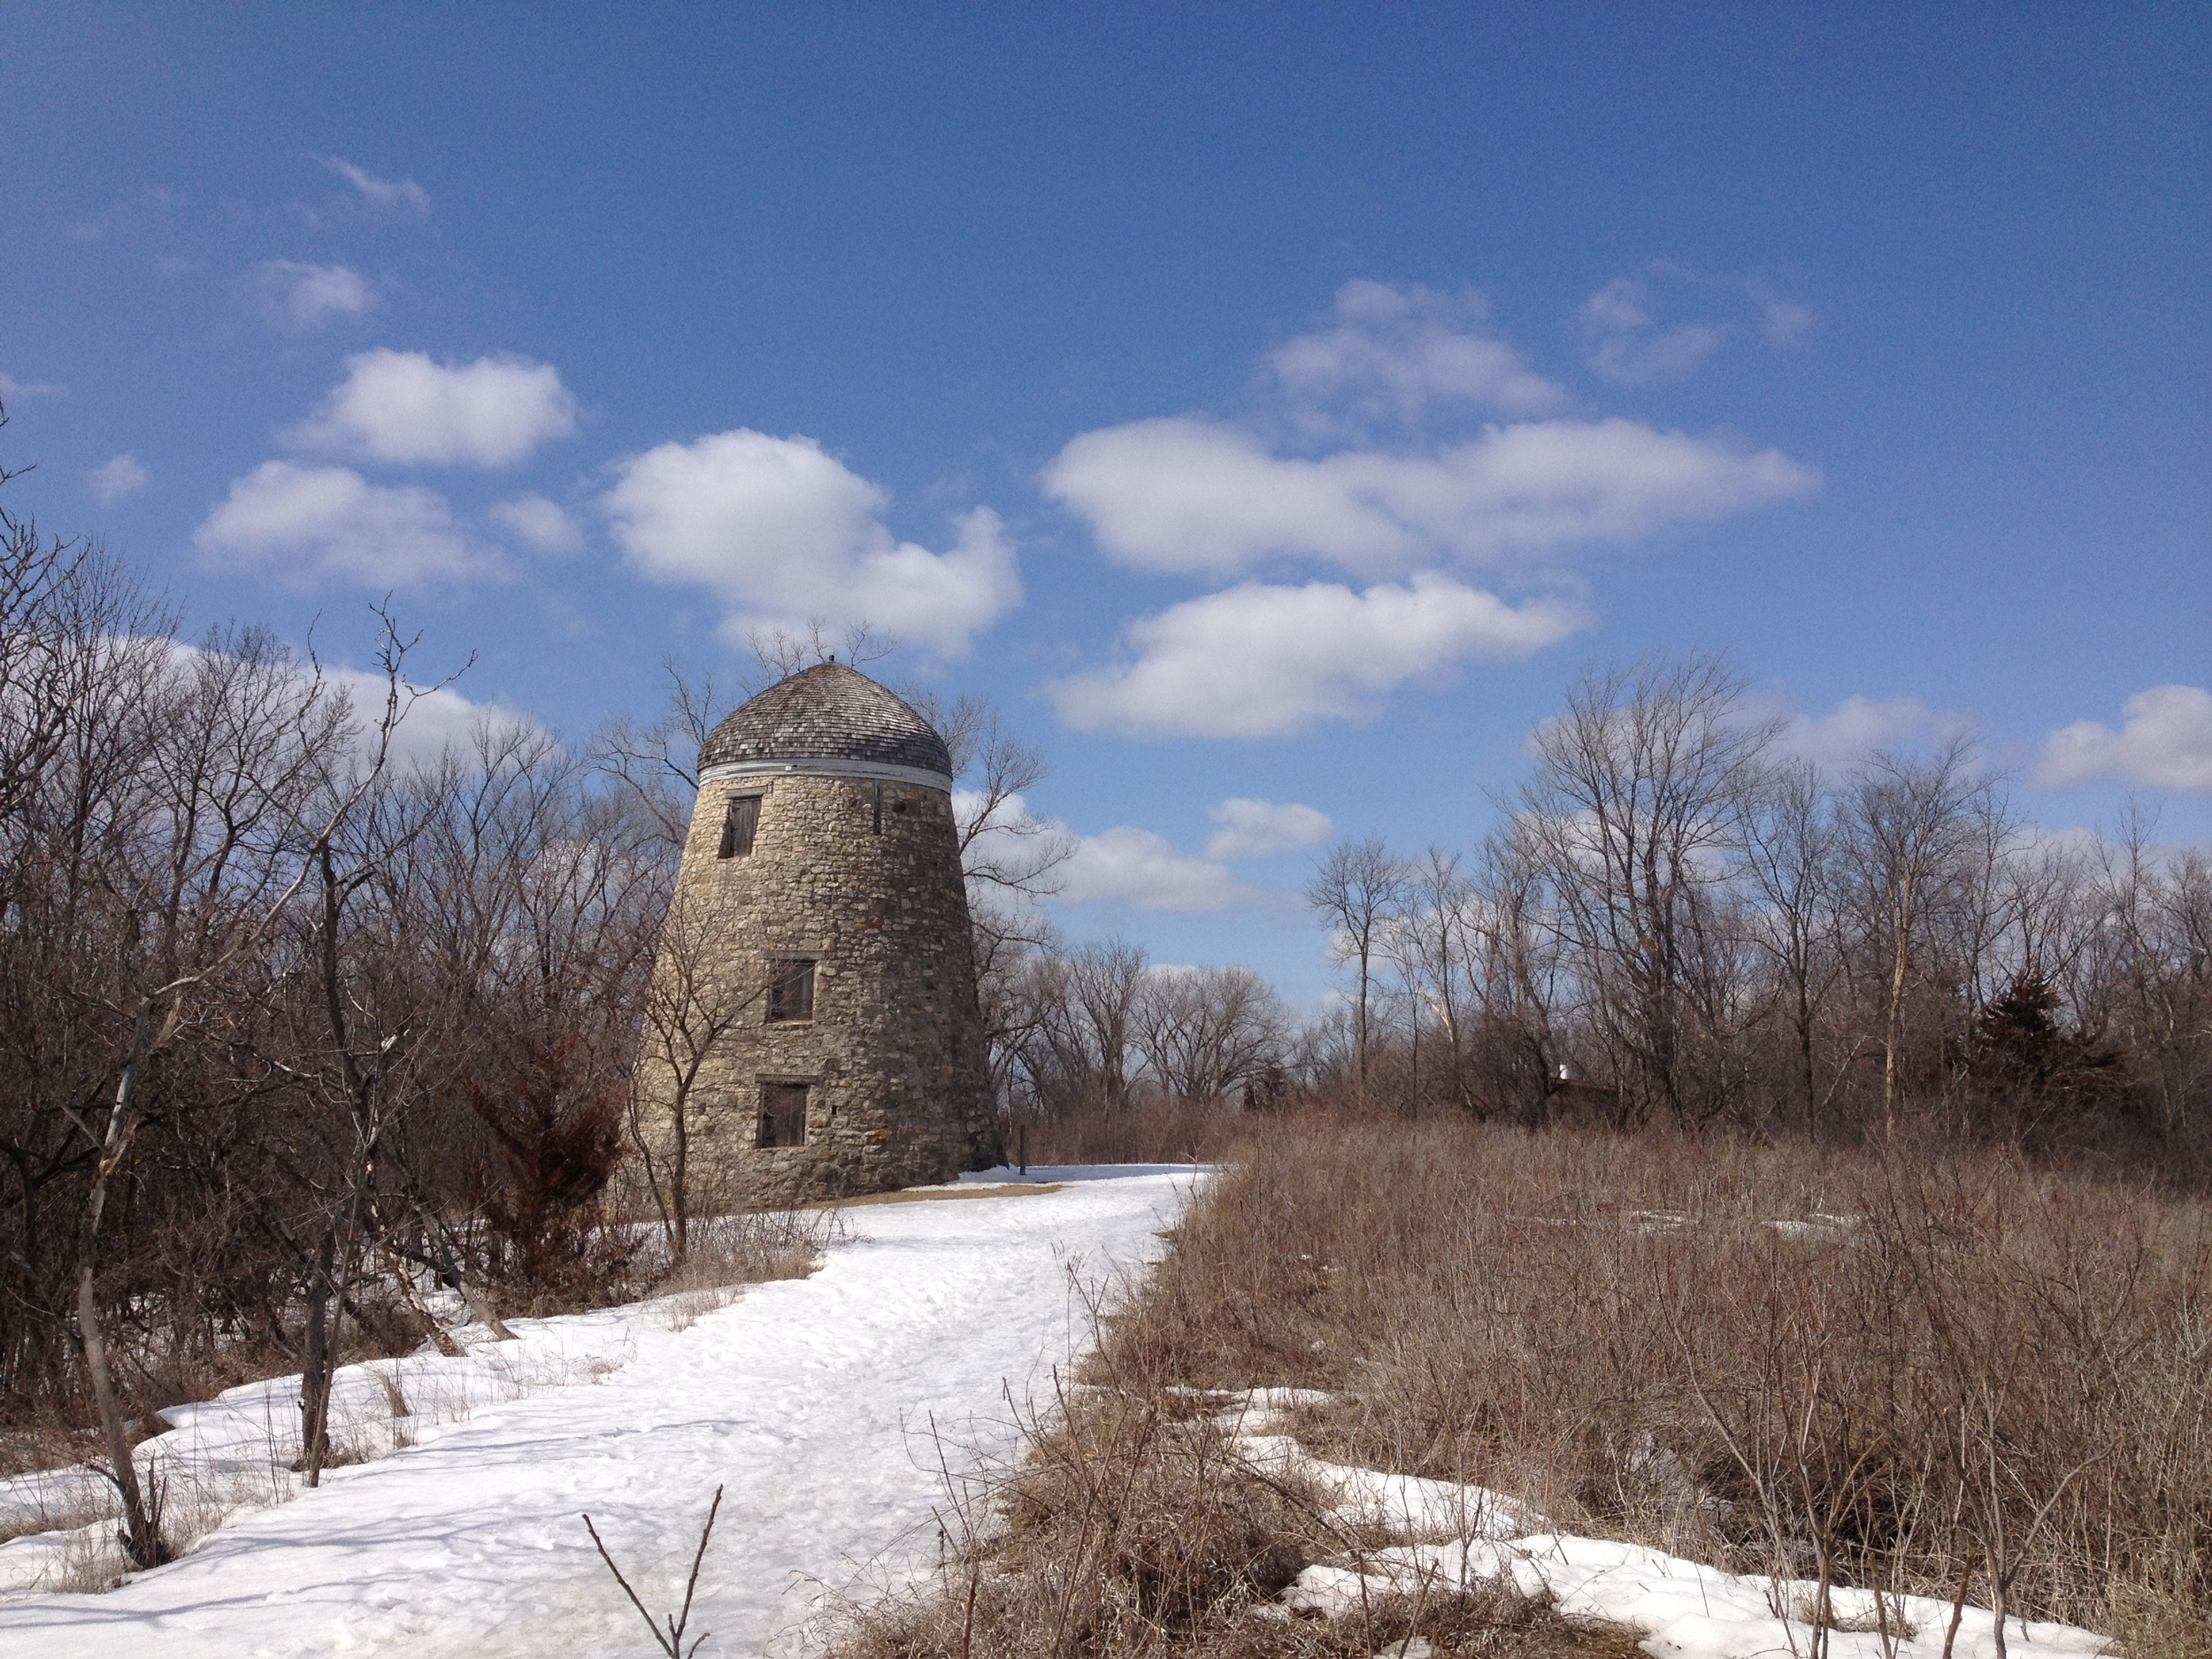 The old tower at Minneopa State Park